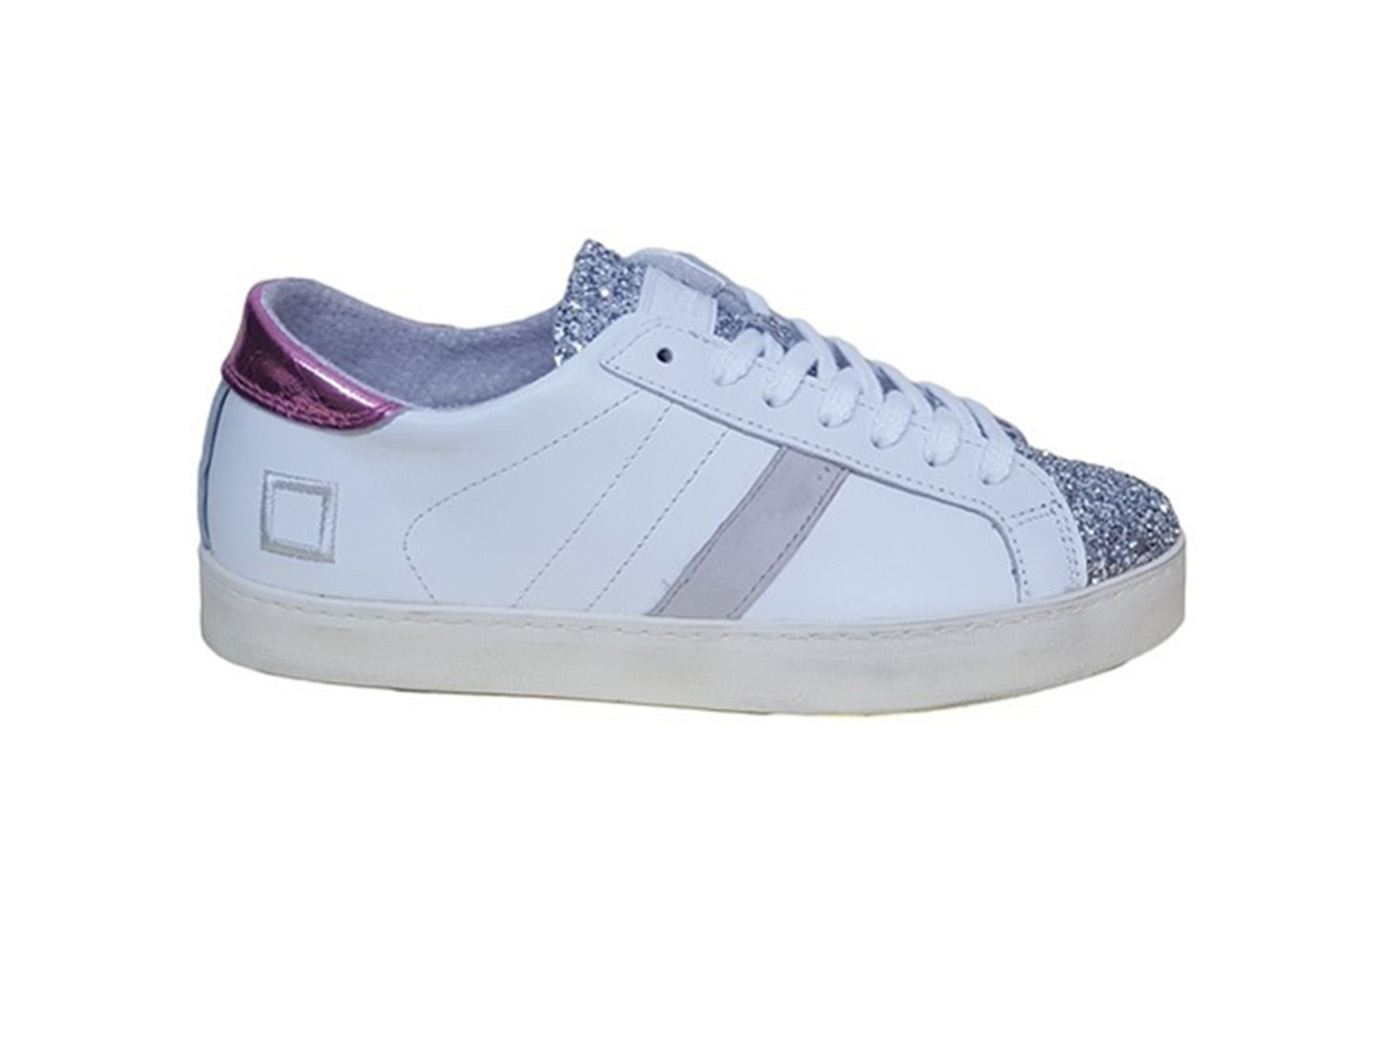 D.A.T.E. HL-PO-WS PELLE BIANCO/ARGENTO SNEAKERS DONNA PELLE HL-PO-WS MainApps 20cd38